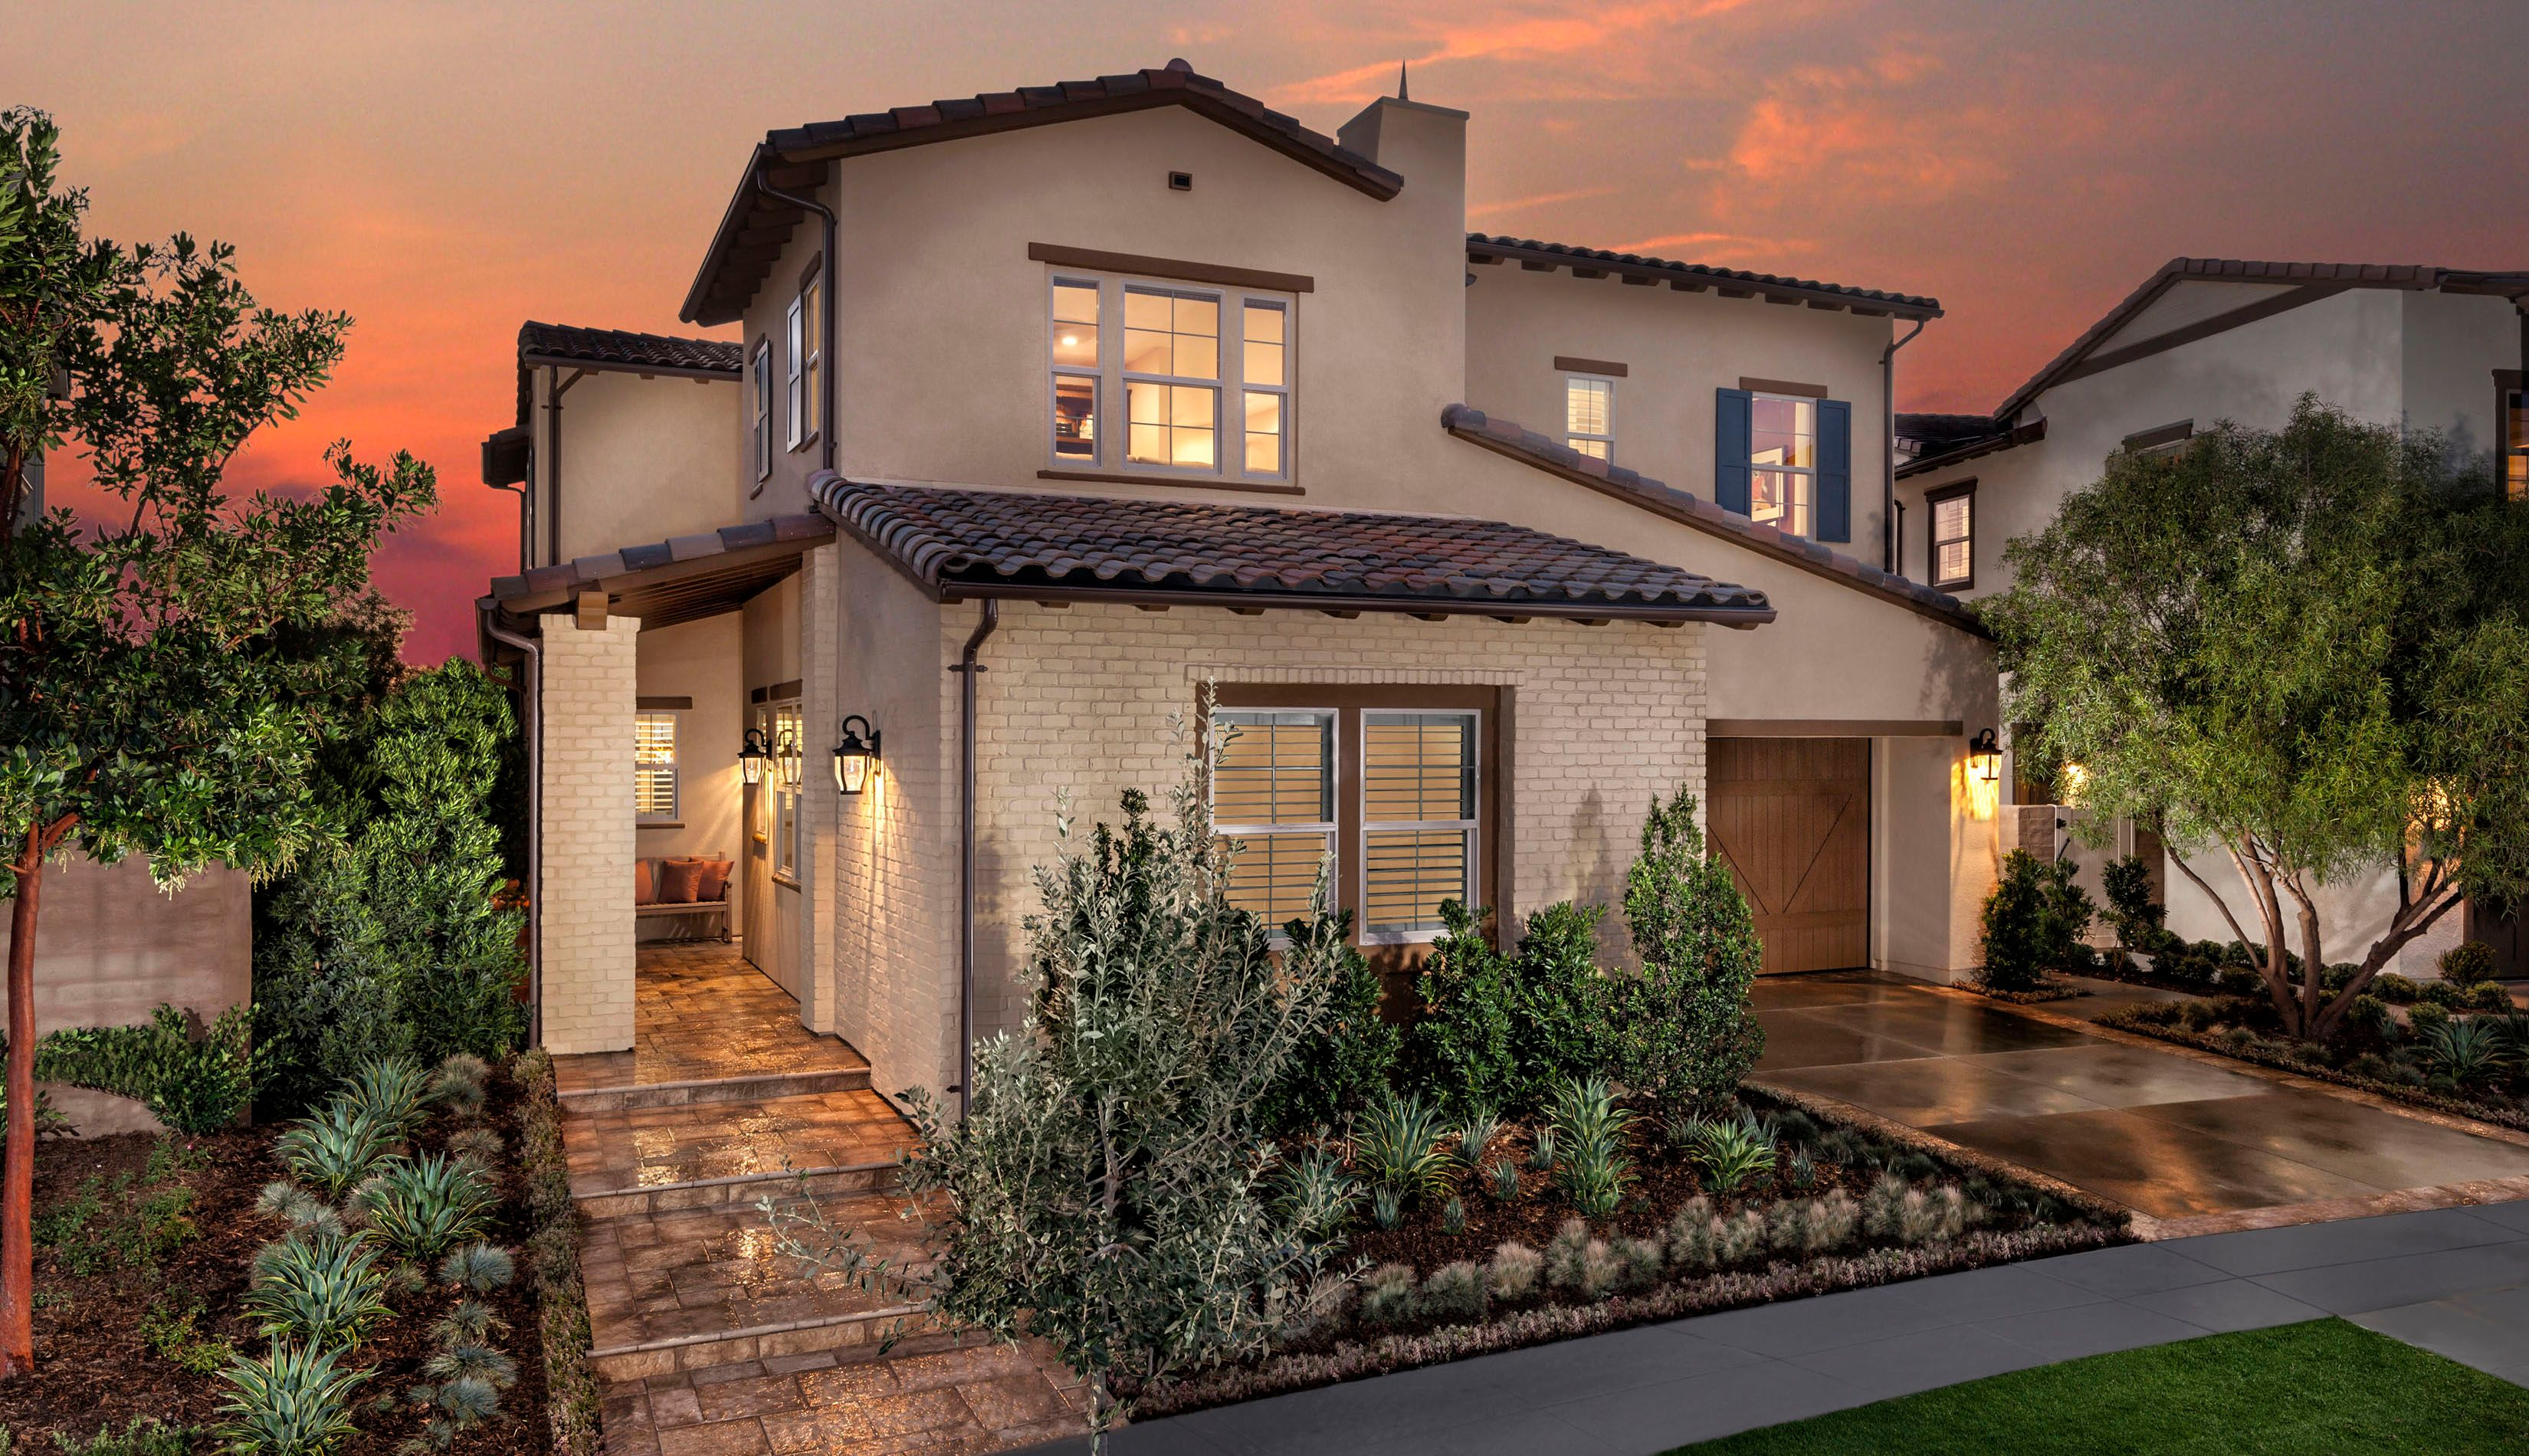 Single Family for Sale at Aubergine At Esencia - Residence 2 8 Cadencia Street Rancho Mission Viejo, California 92694 United States